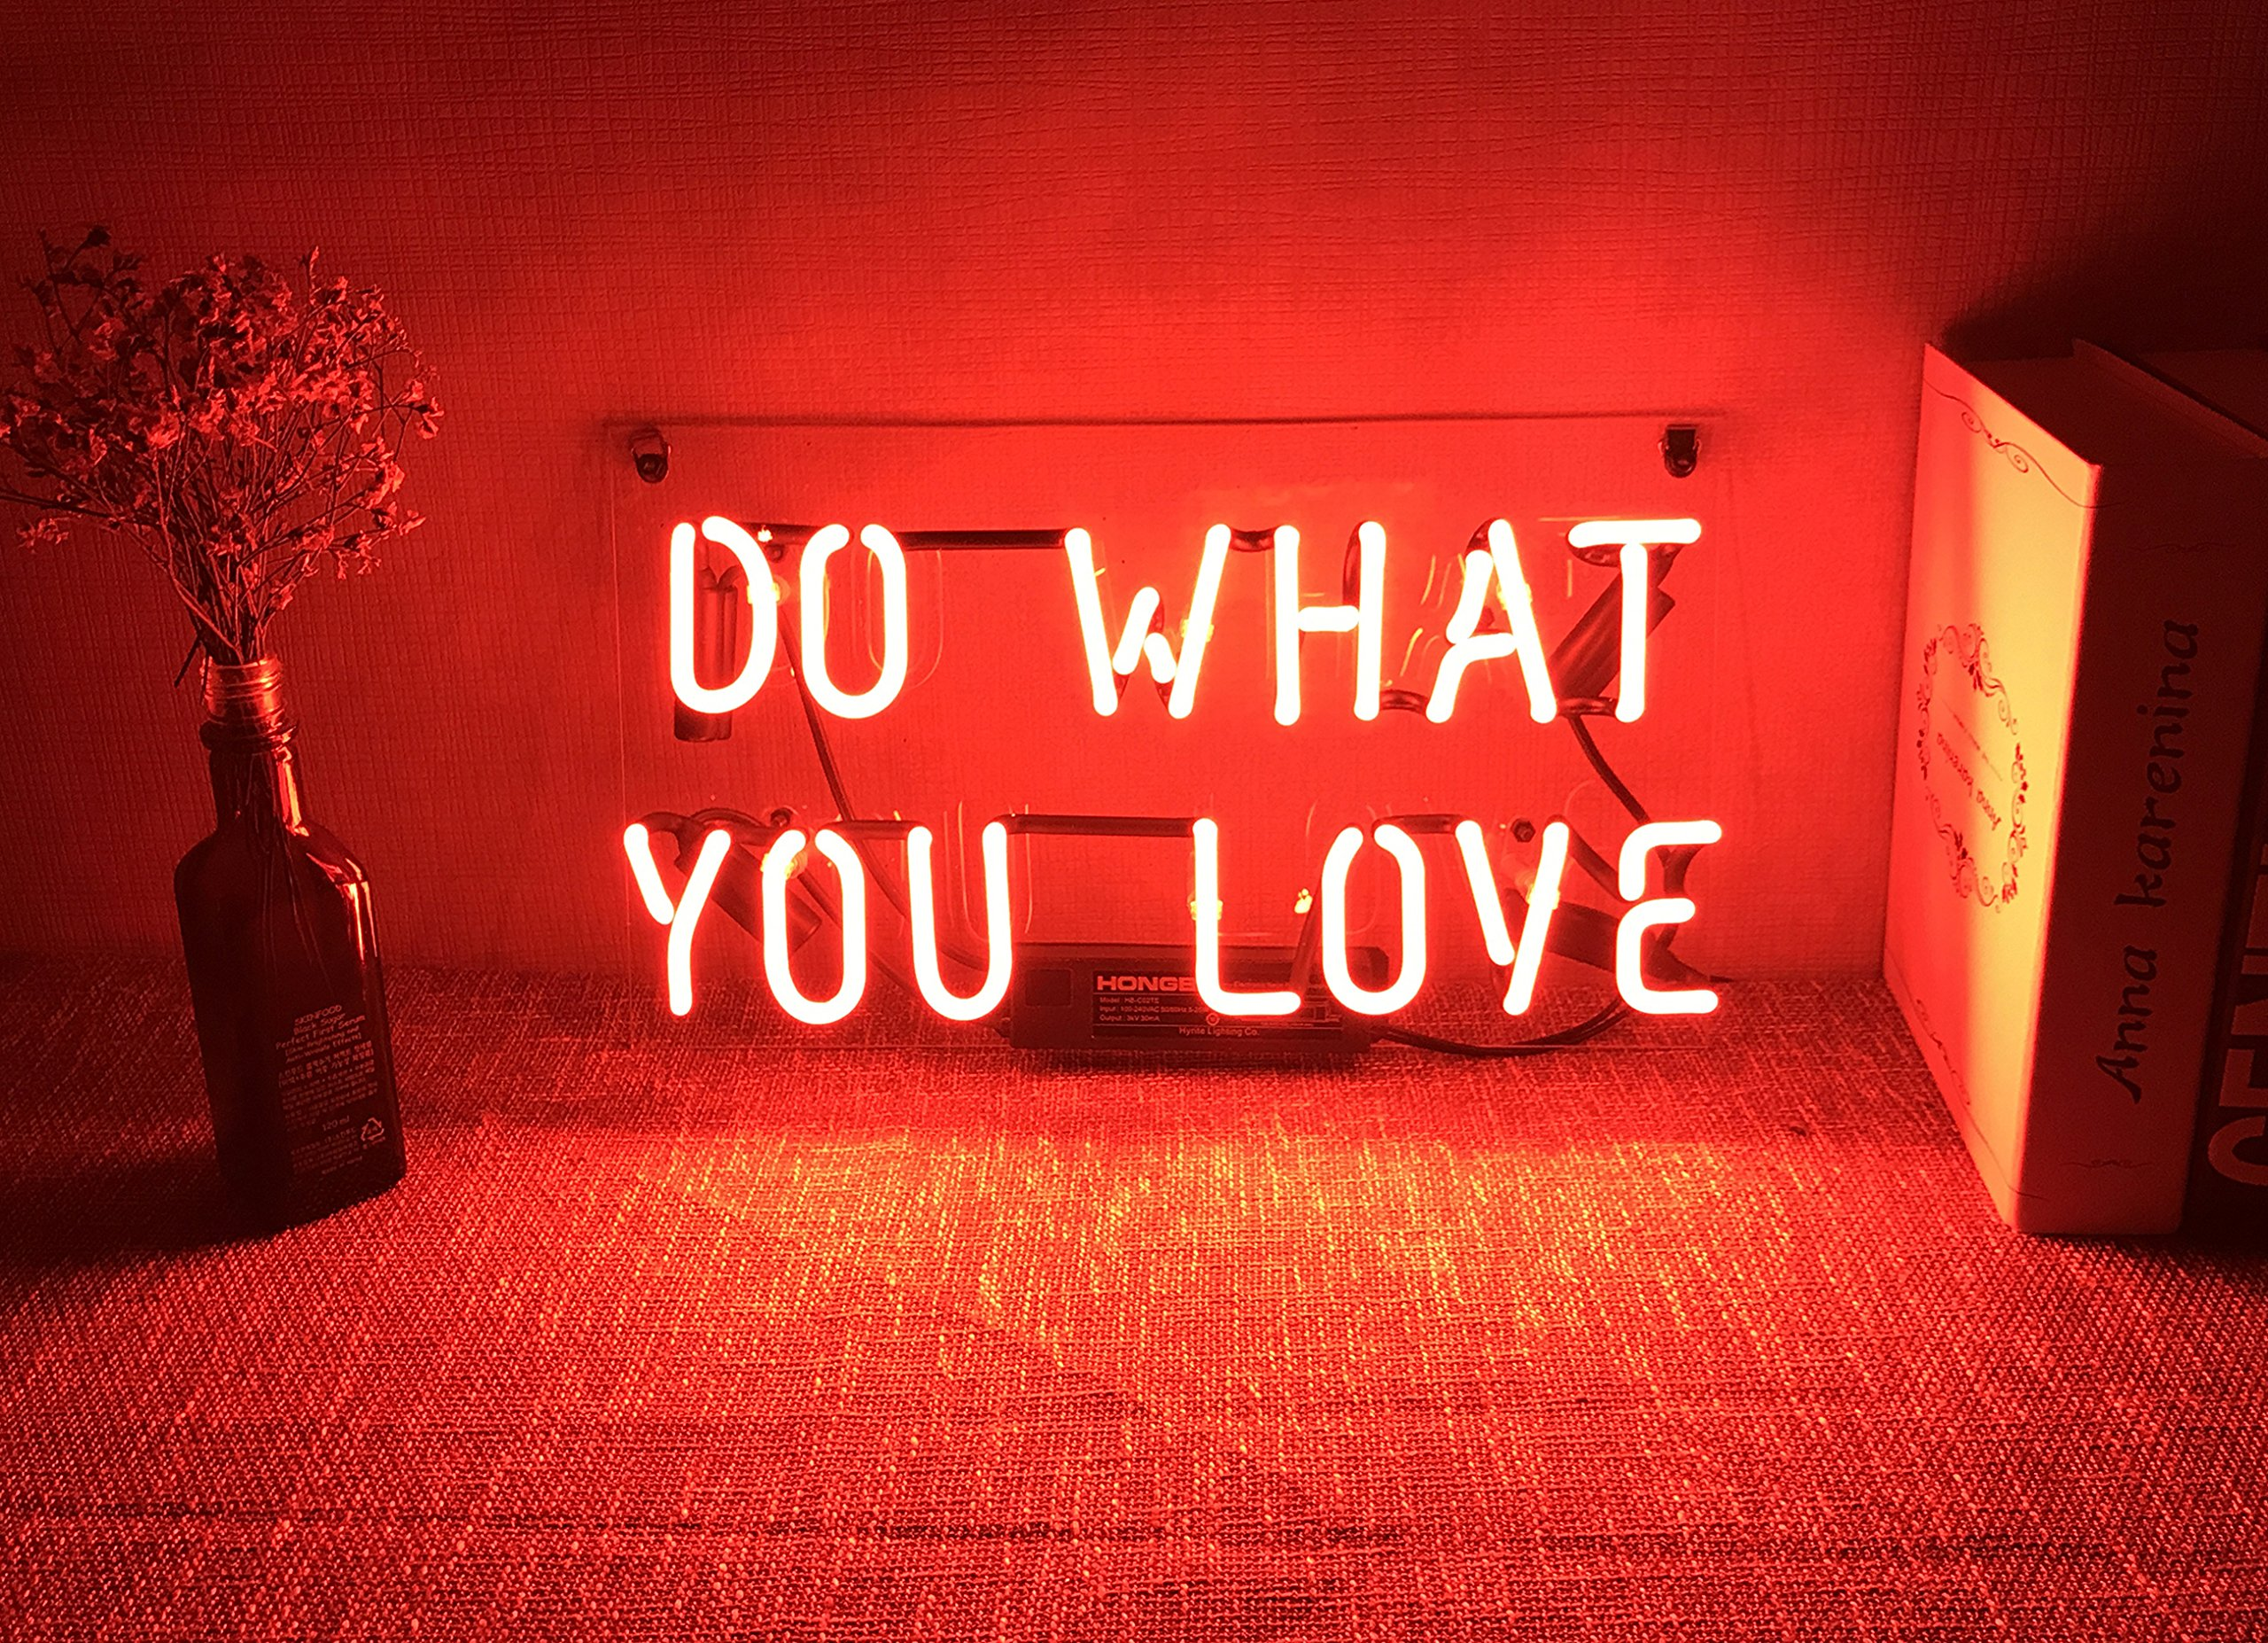 Neon Wall Sign Decorative Lights Funny Custom Girls Bedroom Beer Bar Home Room Decor Lamp Night Light Orange Red - Do What You Love